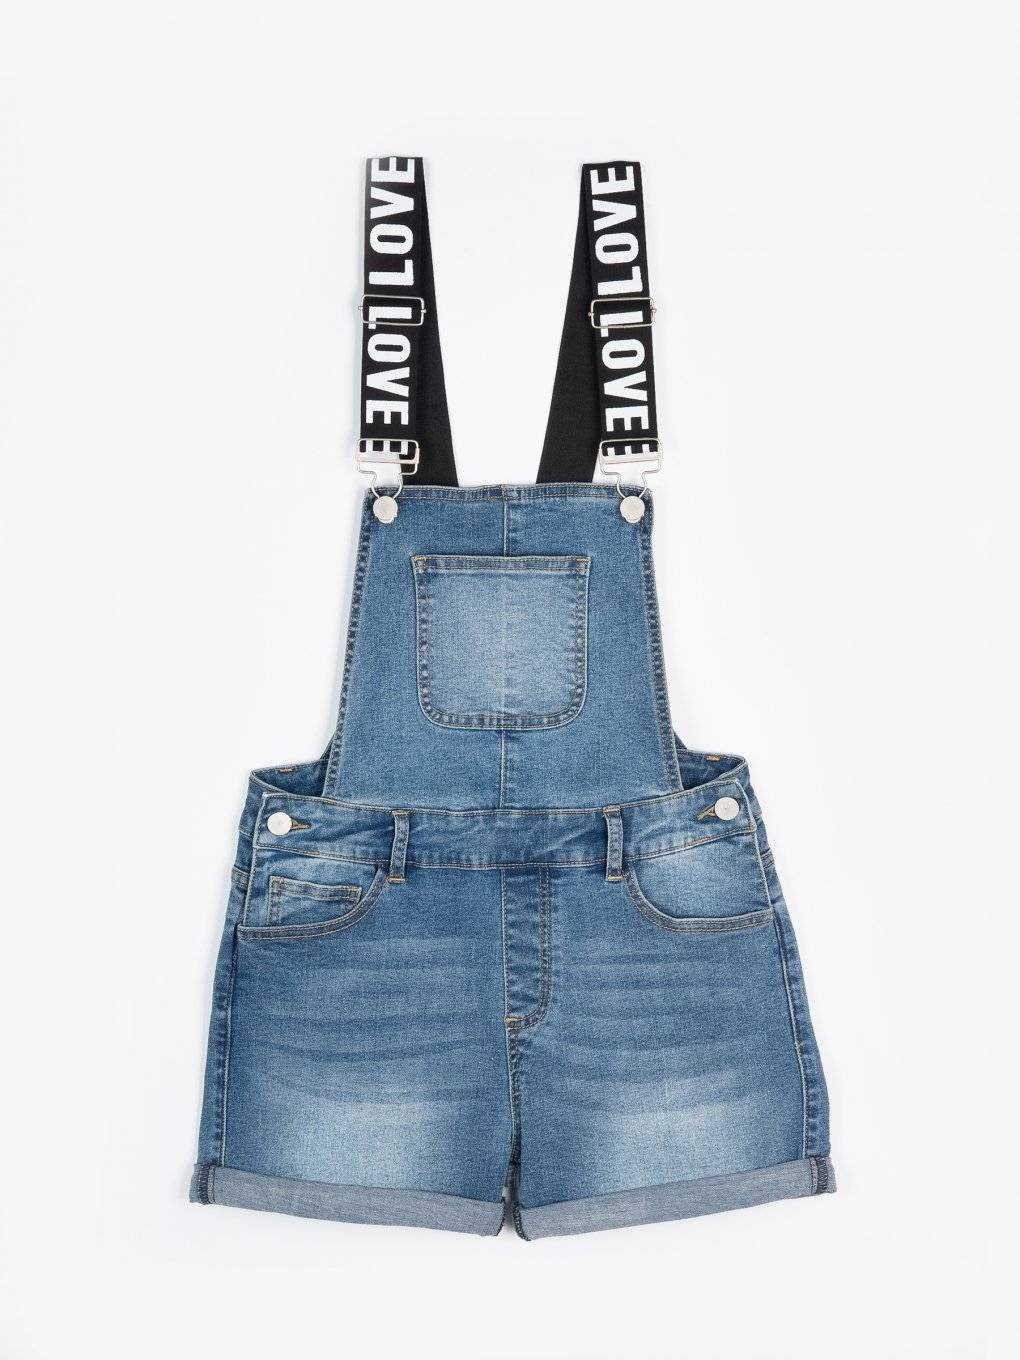 Dungaree denim shorts